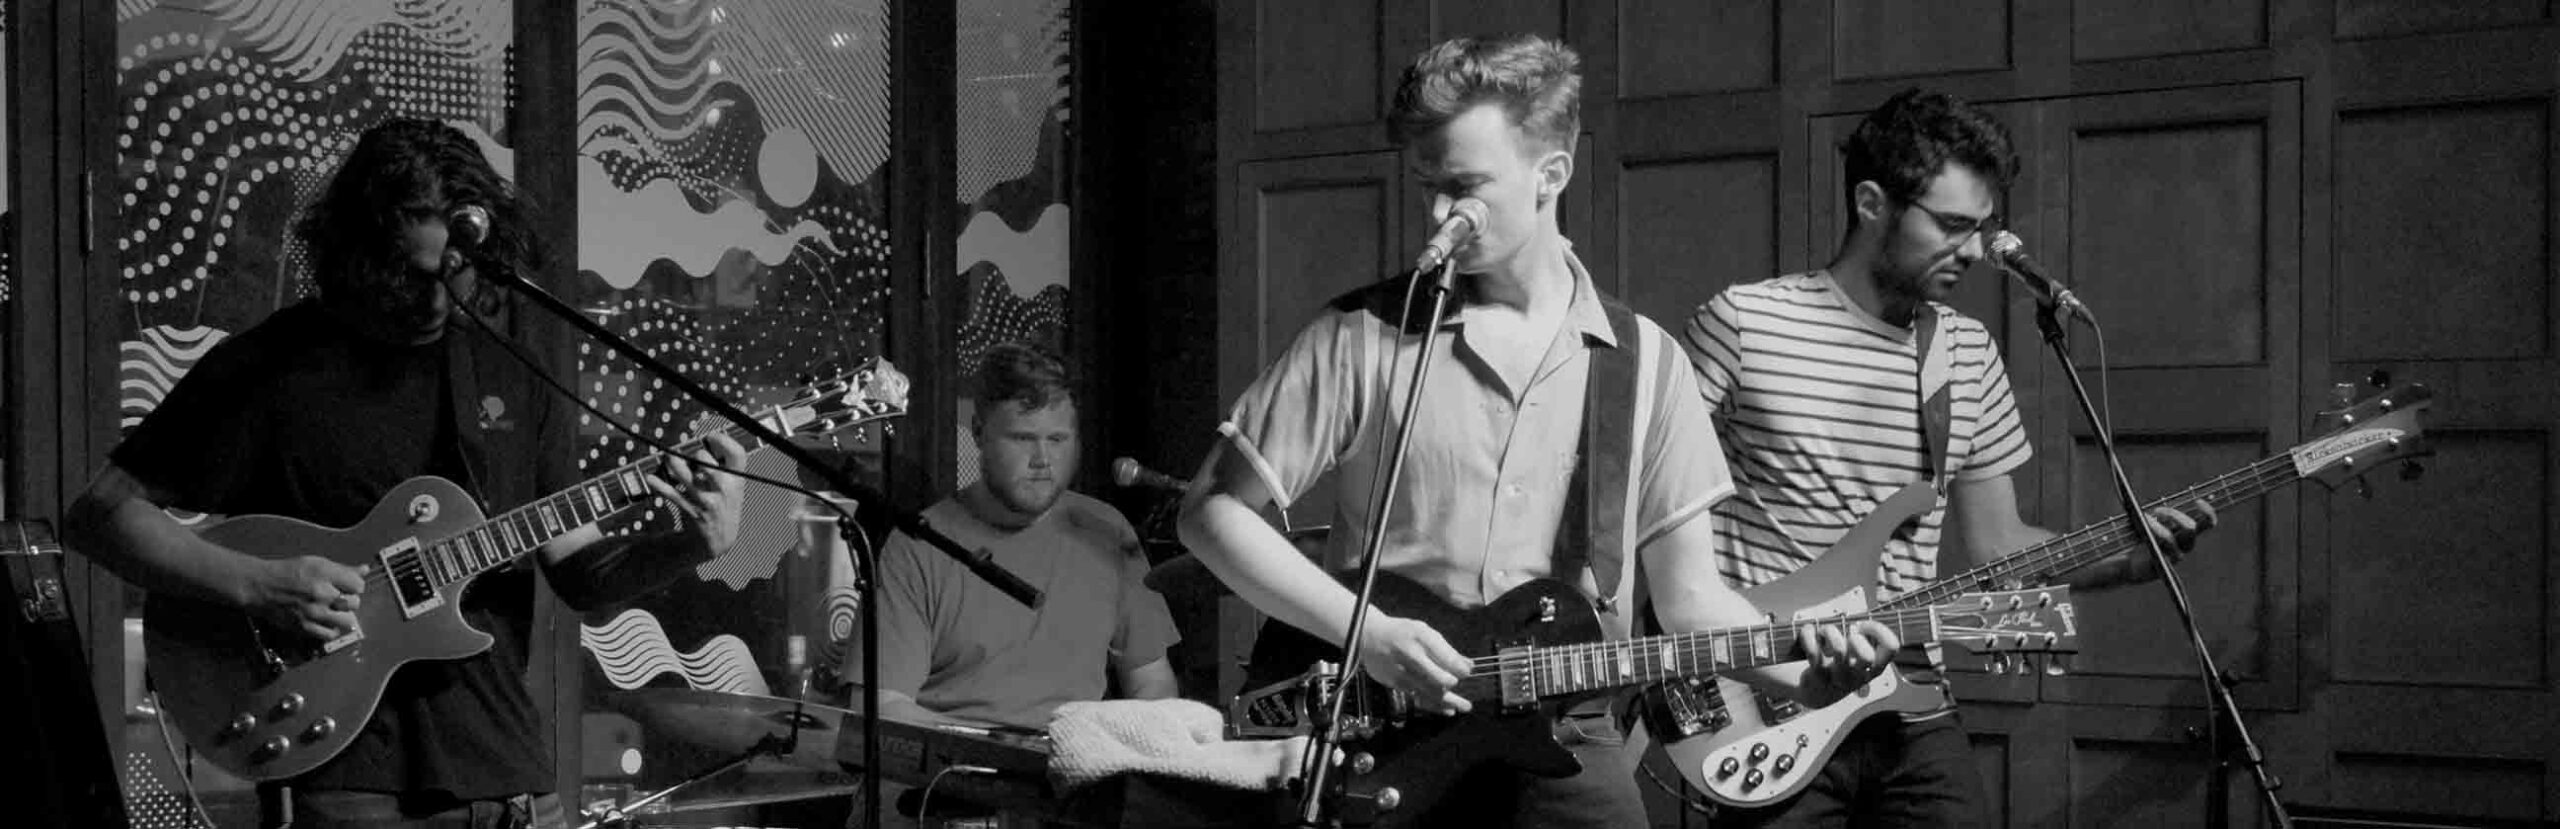 The Detours playing at The Gladstone Hotel